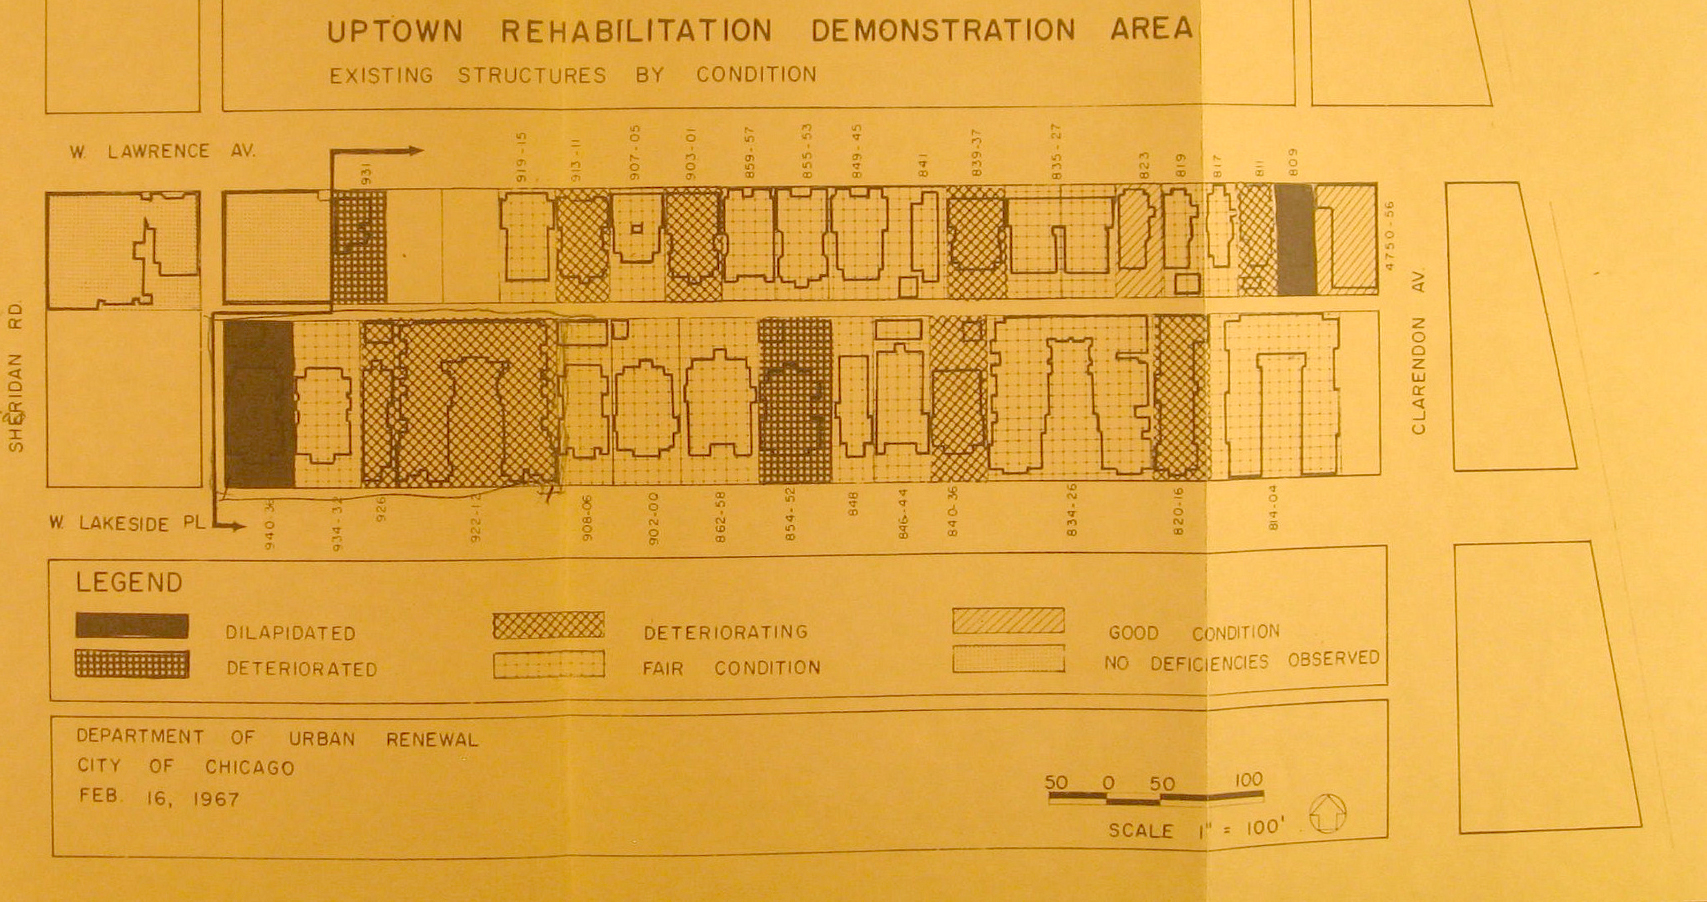 An evaluation of the condition of a block of housing in Uptown by the city's Department of Urban Renewal, 1967. (Flickr/Devin Hunter)